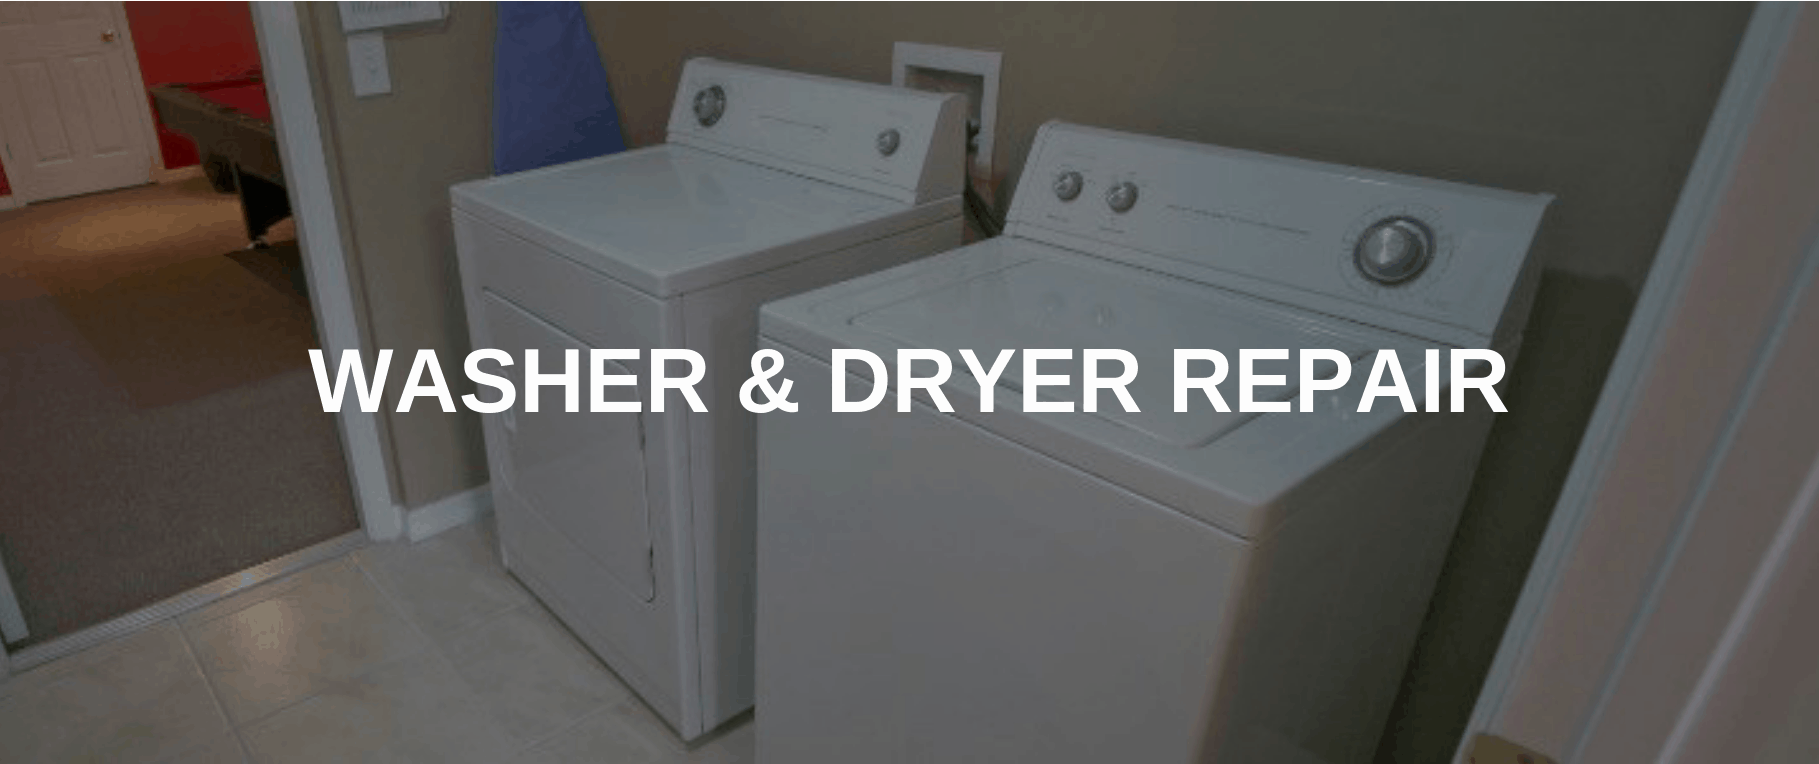 washing machine repair auburn